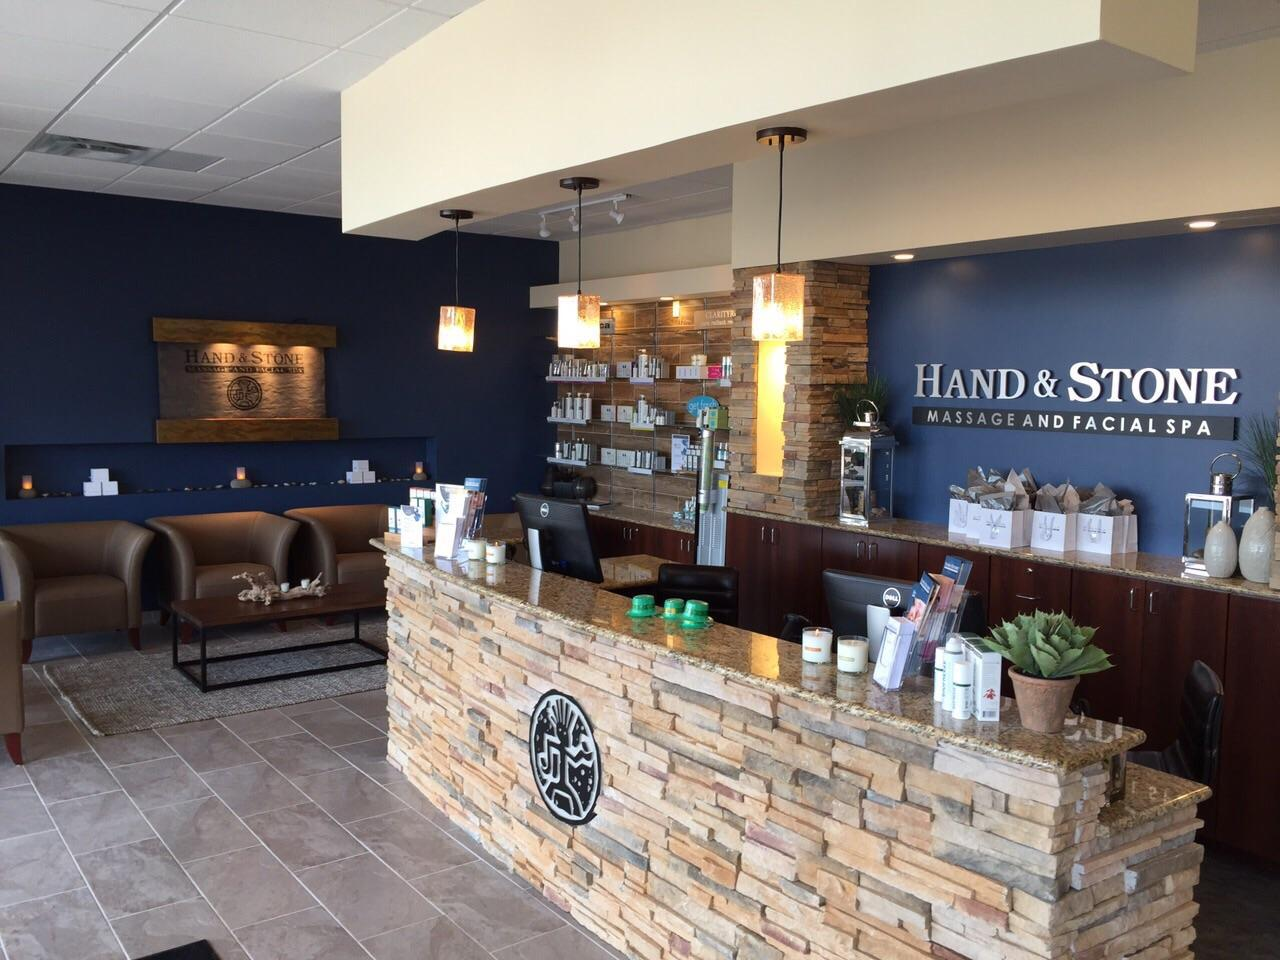 Hand & Stone Massage and Facial Spa in Plano, TX | Whitepages